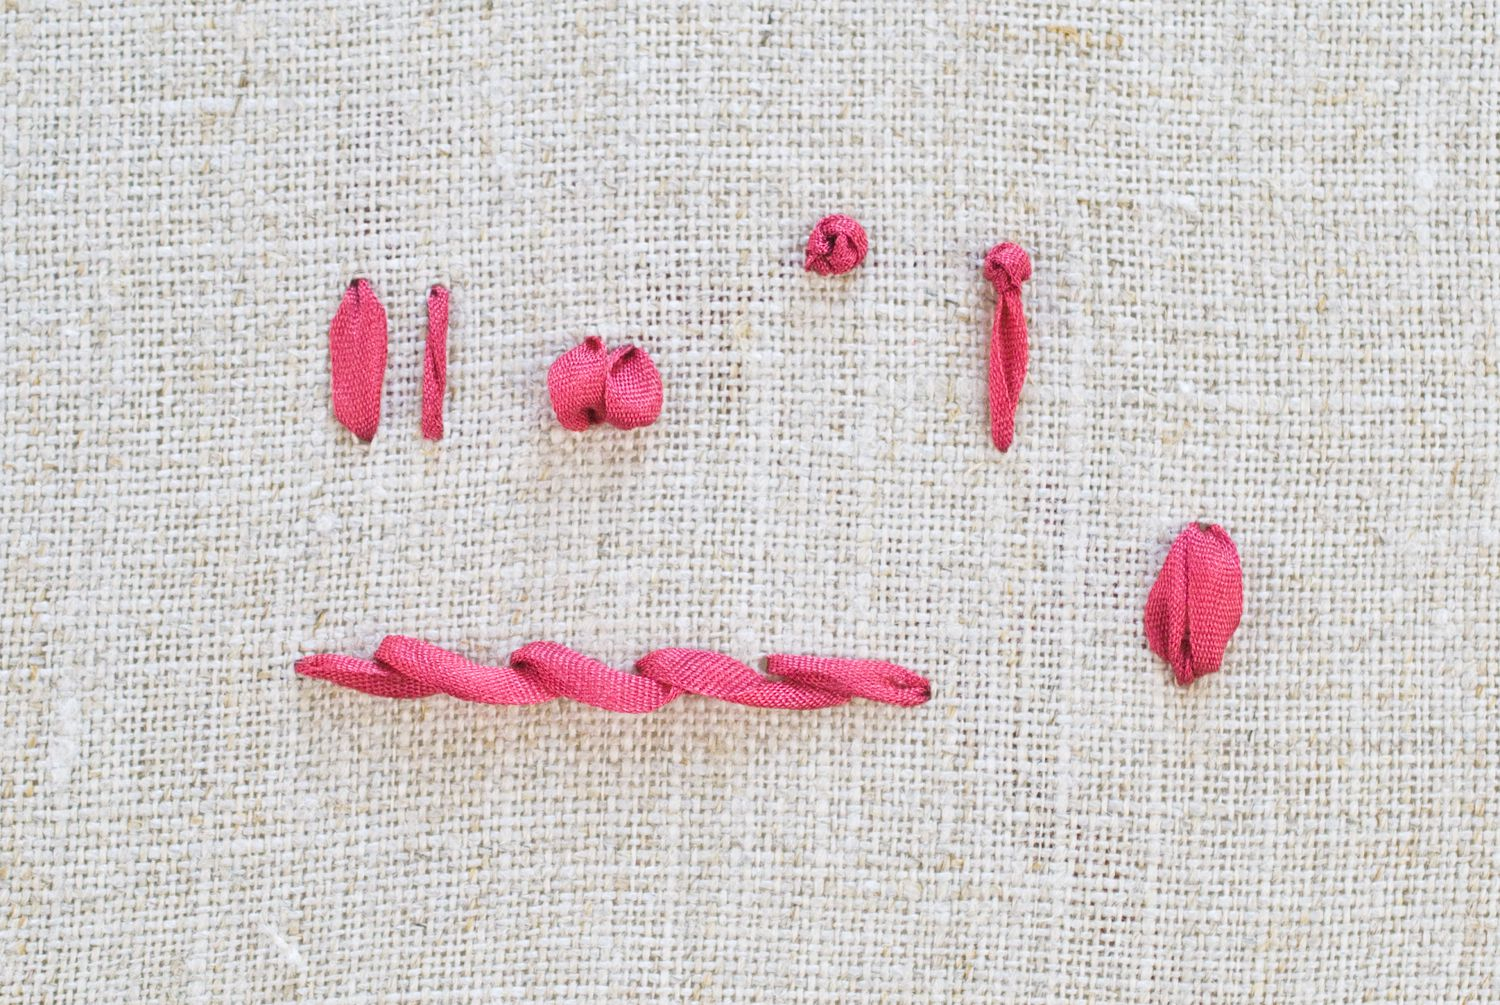 How To Make Embroidery Patterns The Basics Of Silk Ribbon Embroidery